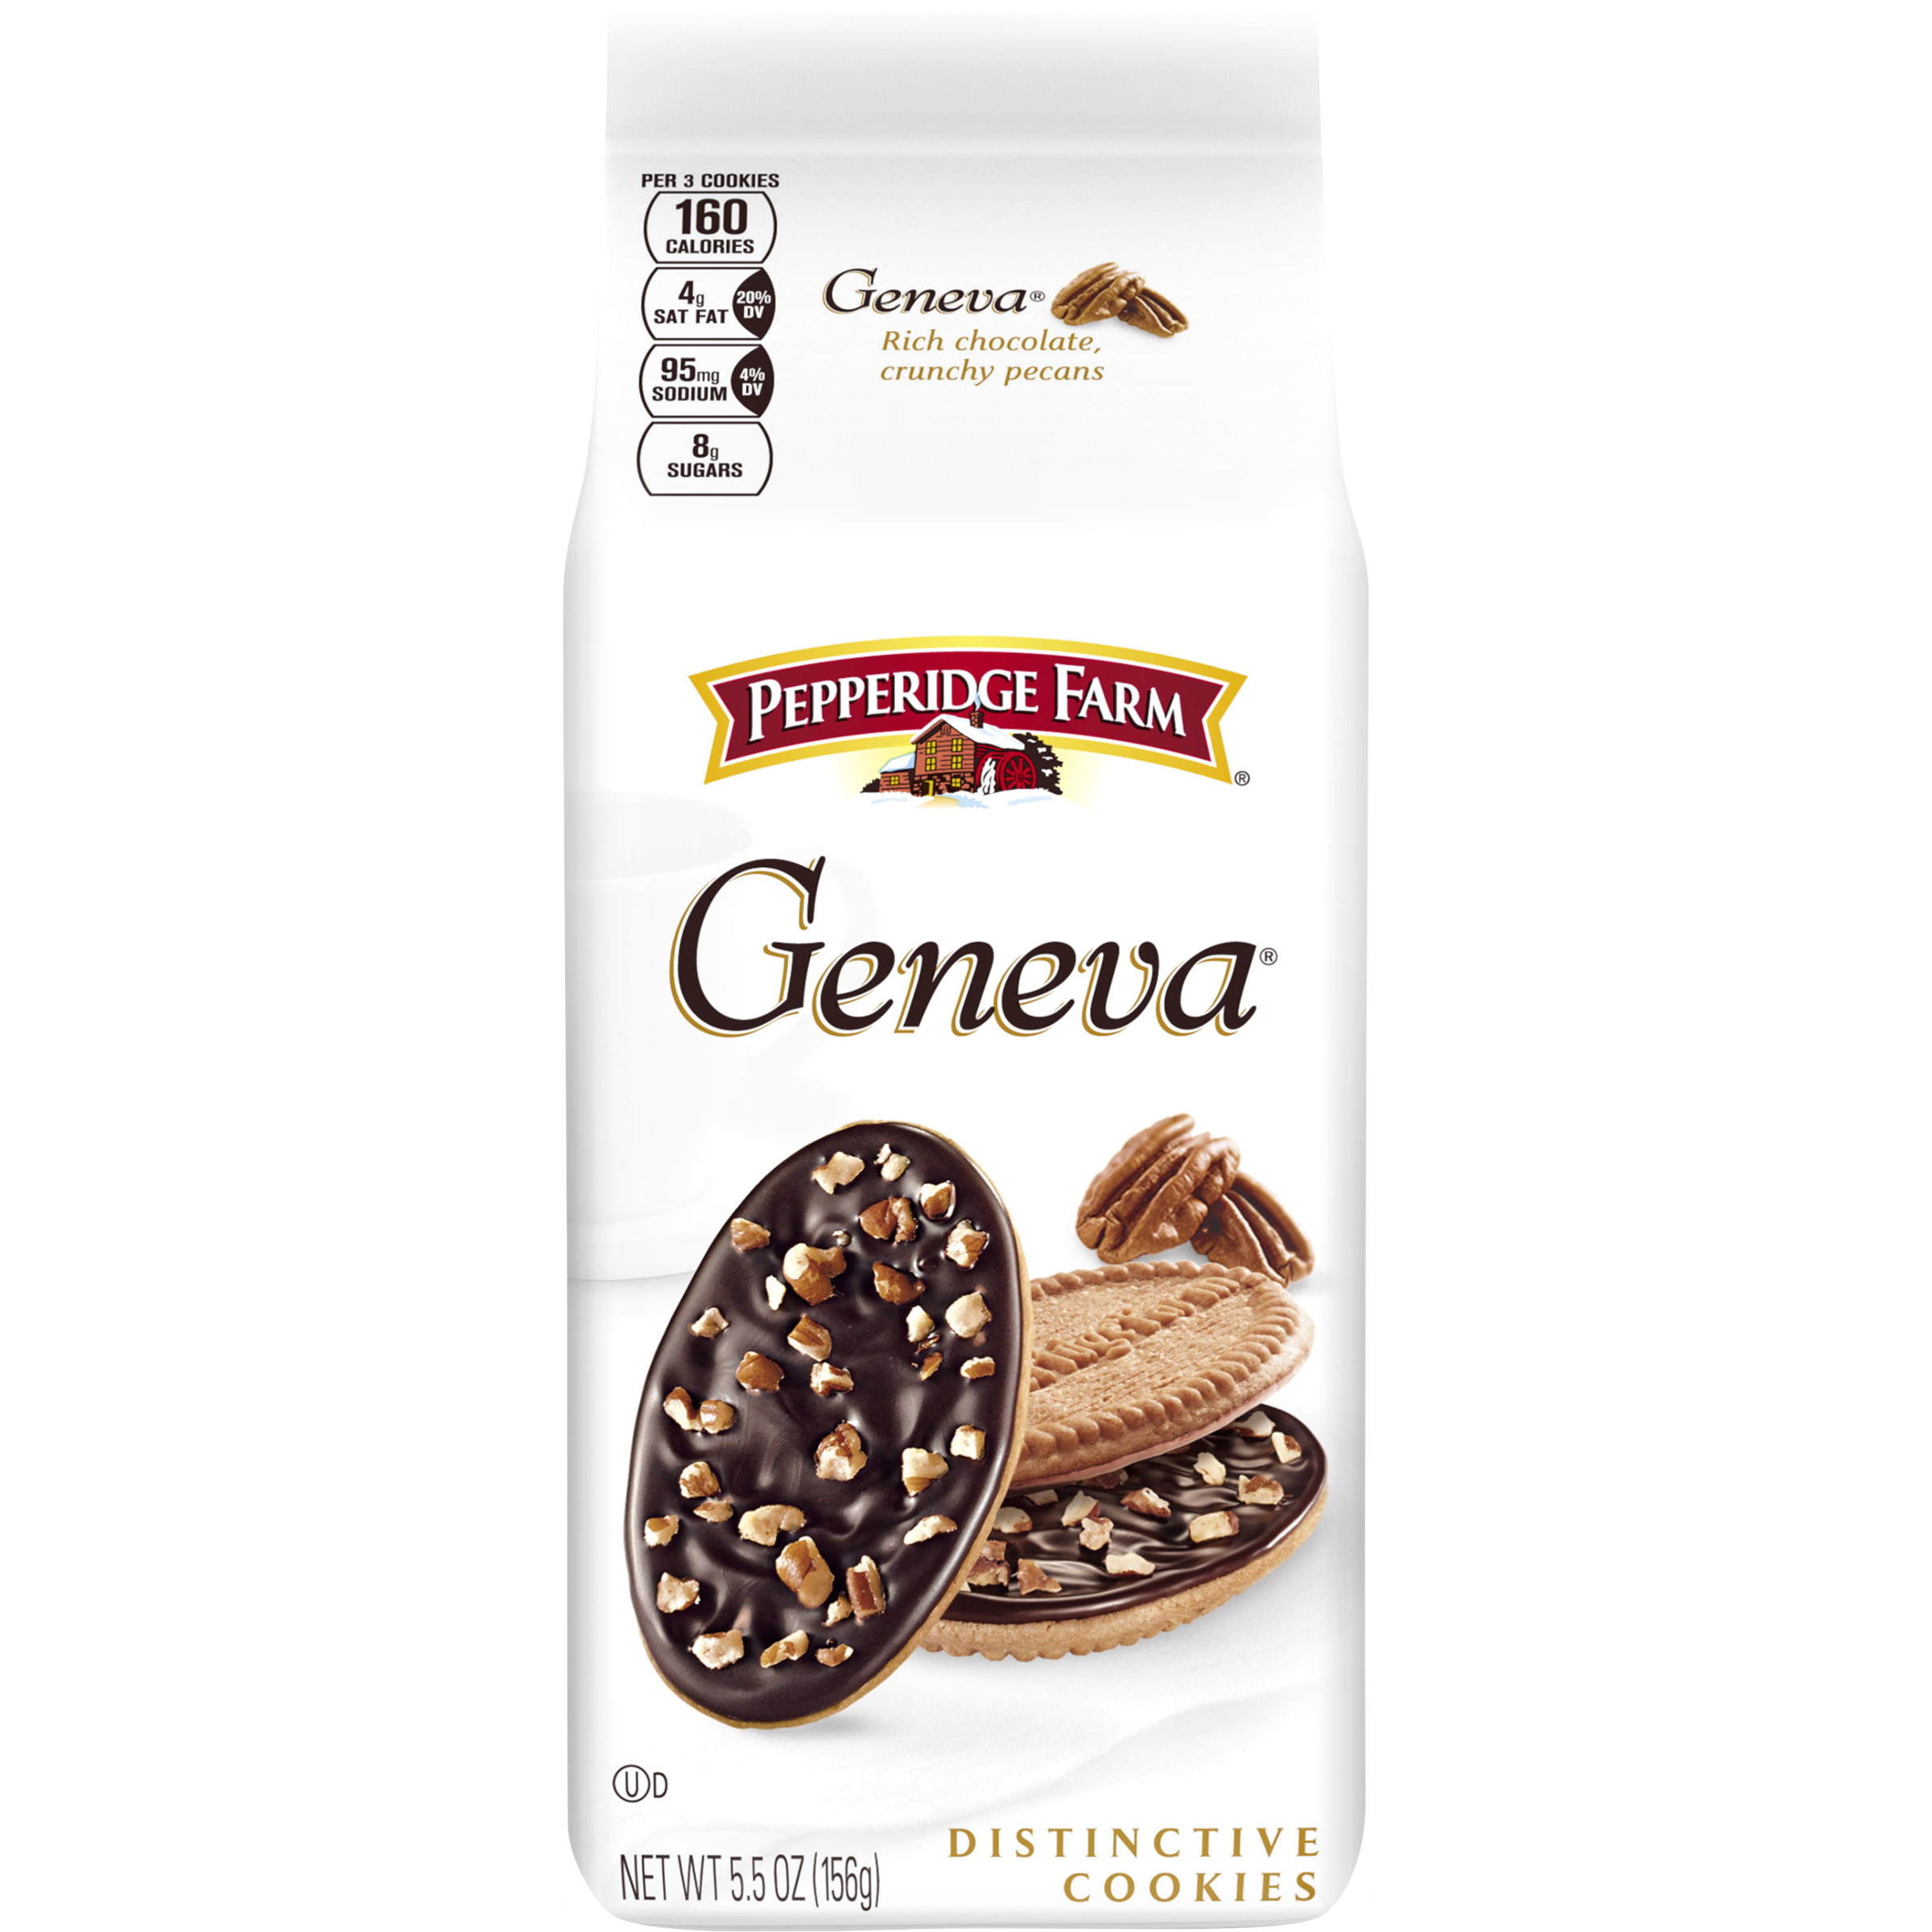 pepperidge farm geneva chocolate pecan covered cookies 5 5 oz bag walmart com